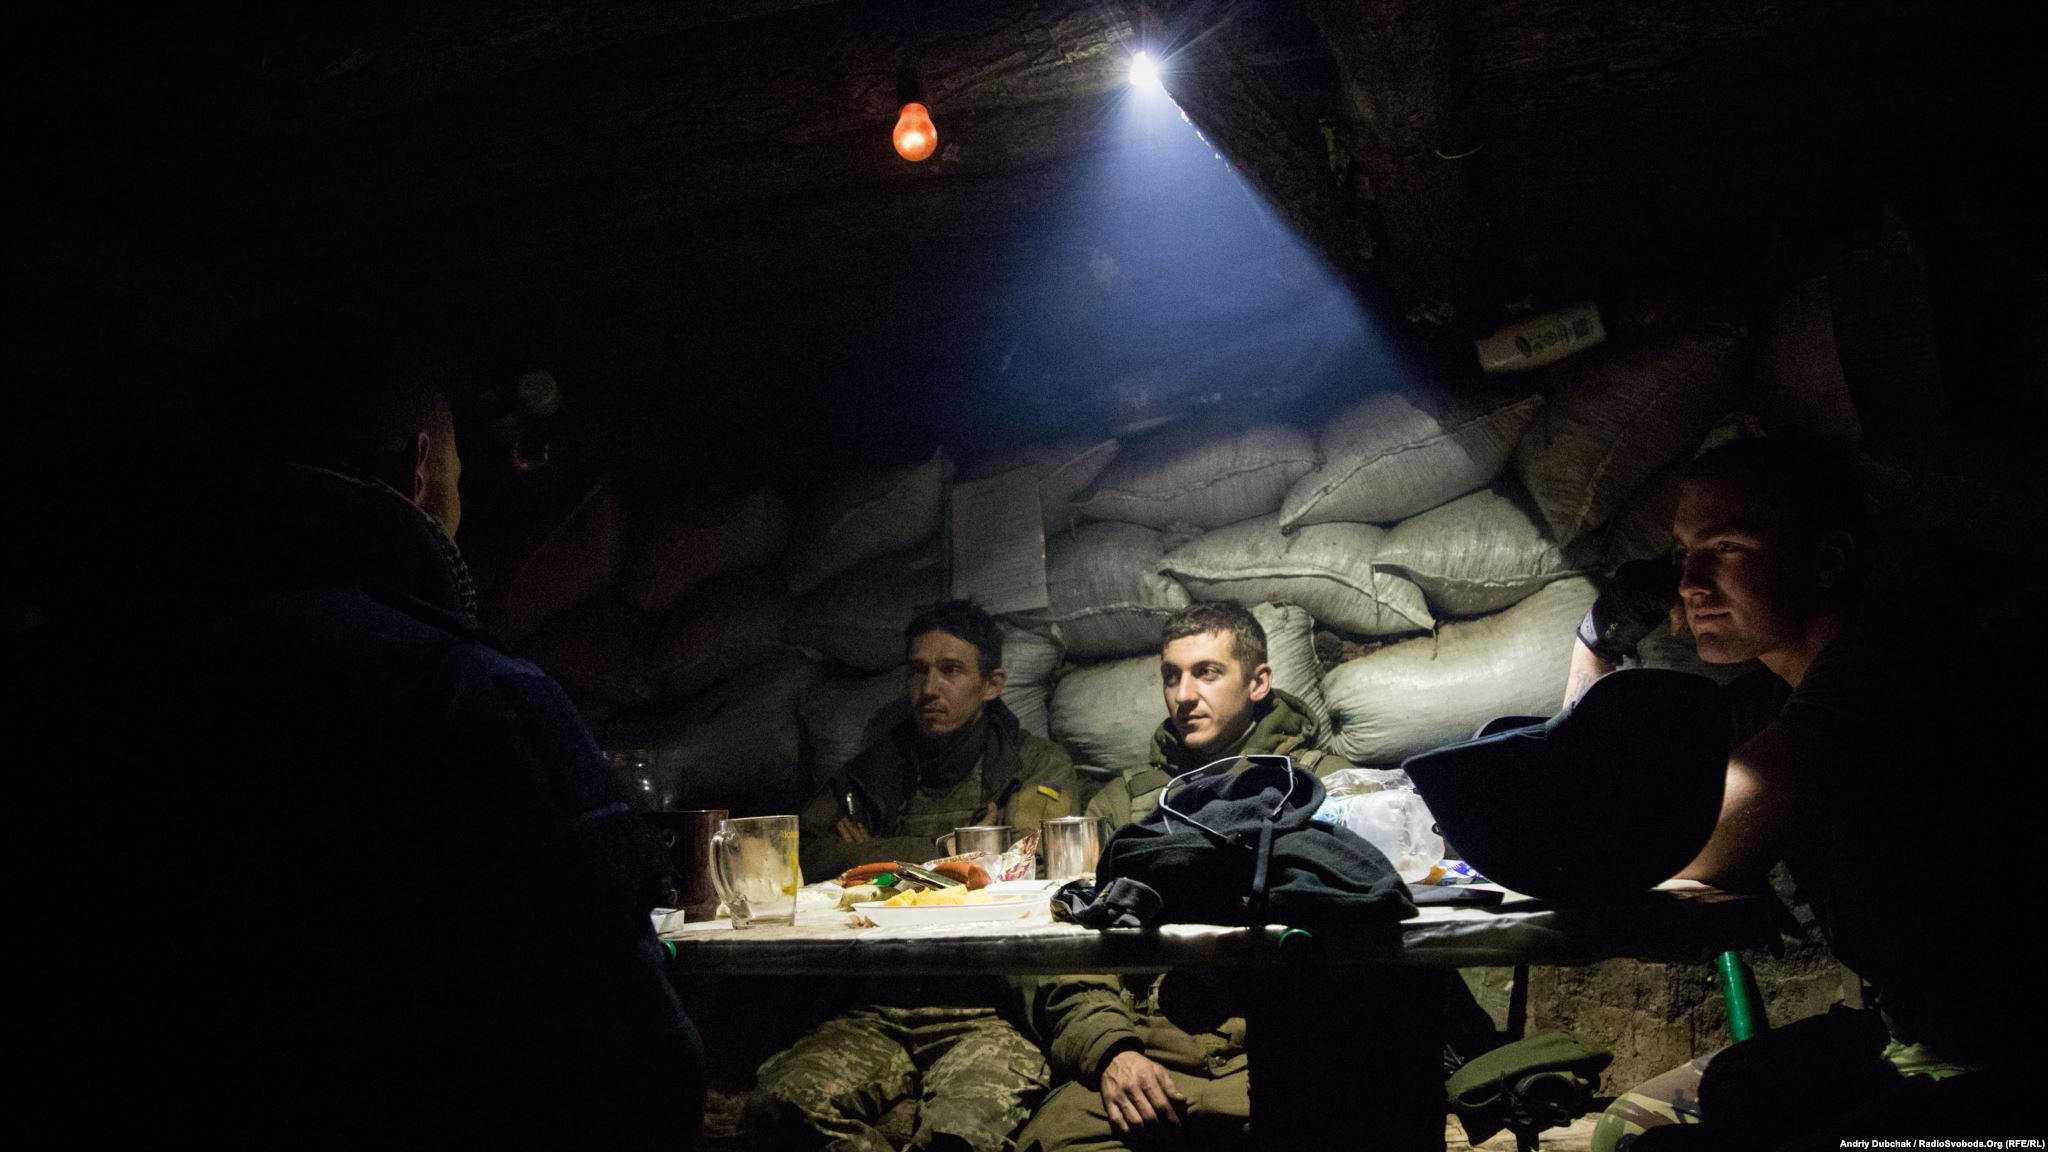 Dinner in the middle of fighting. Men drink tea and rest in a kitchen-dugout, while other soldiers were suppressing enemy fire. (photo by ukrainian military photographer Andriy Dubchak)